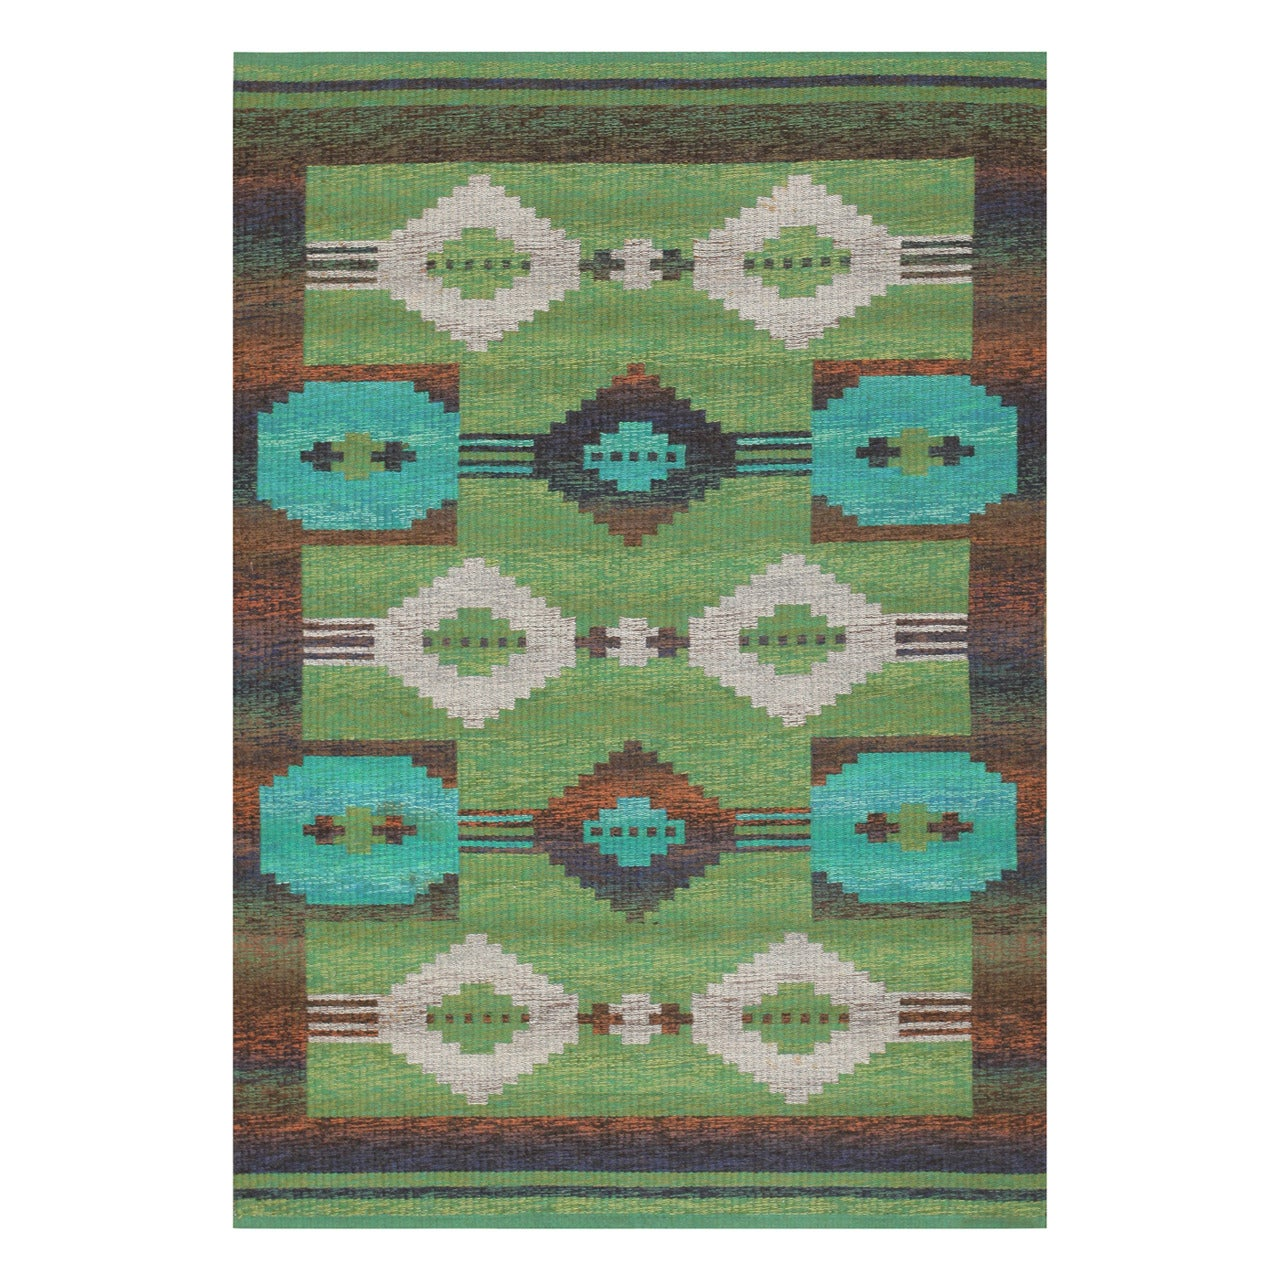 Double Sided Vintage Scandinavian Rug. Size: 4 ft 6 in x 6 ft 6 in